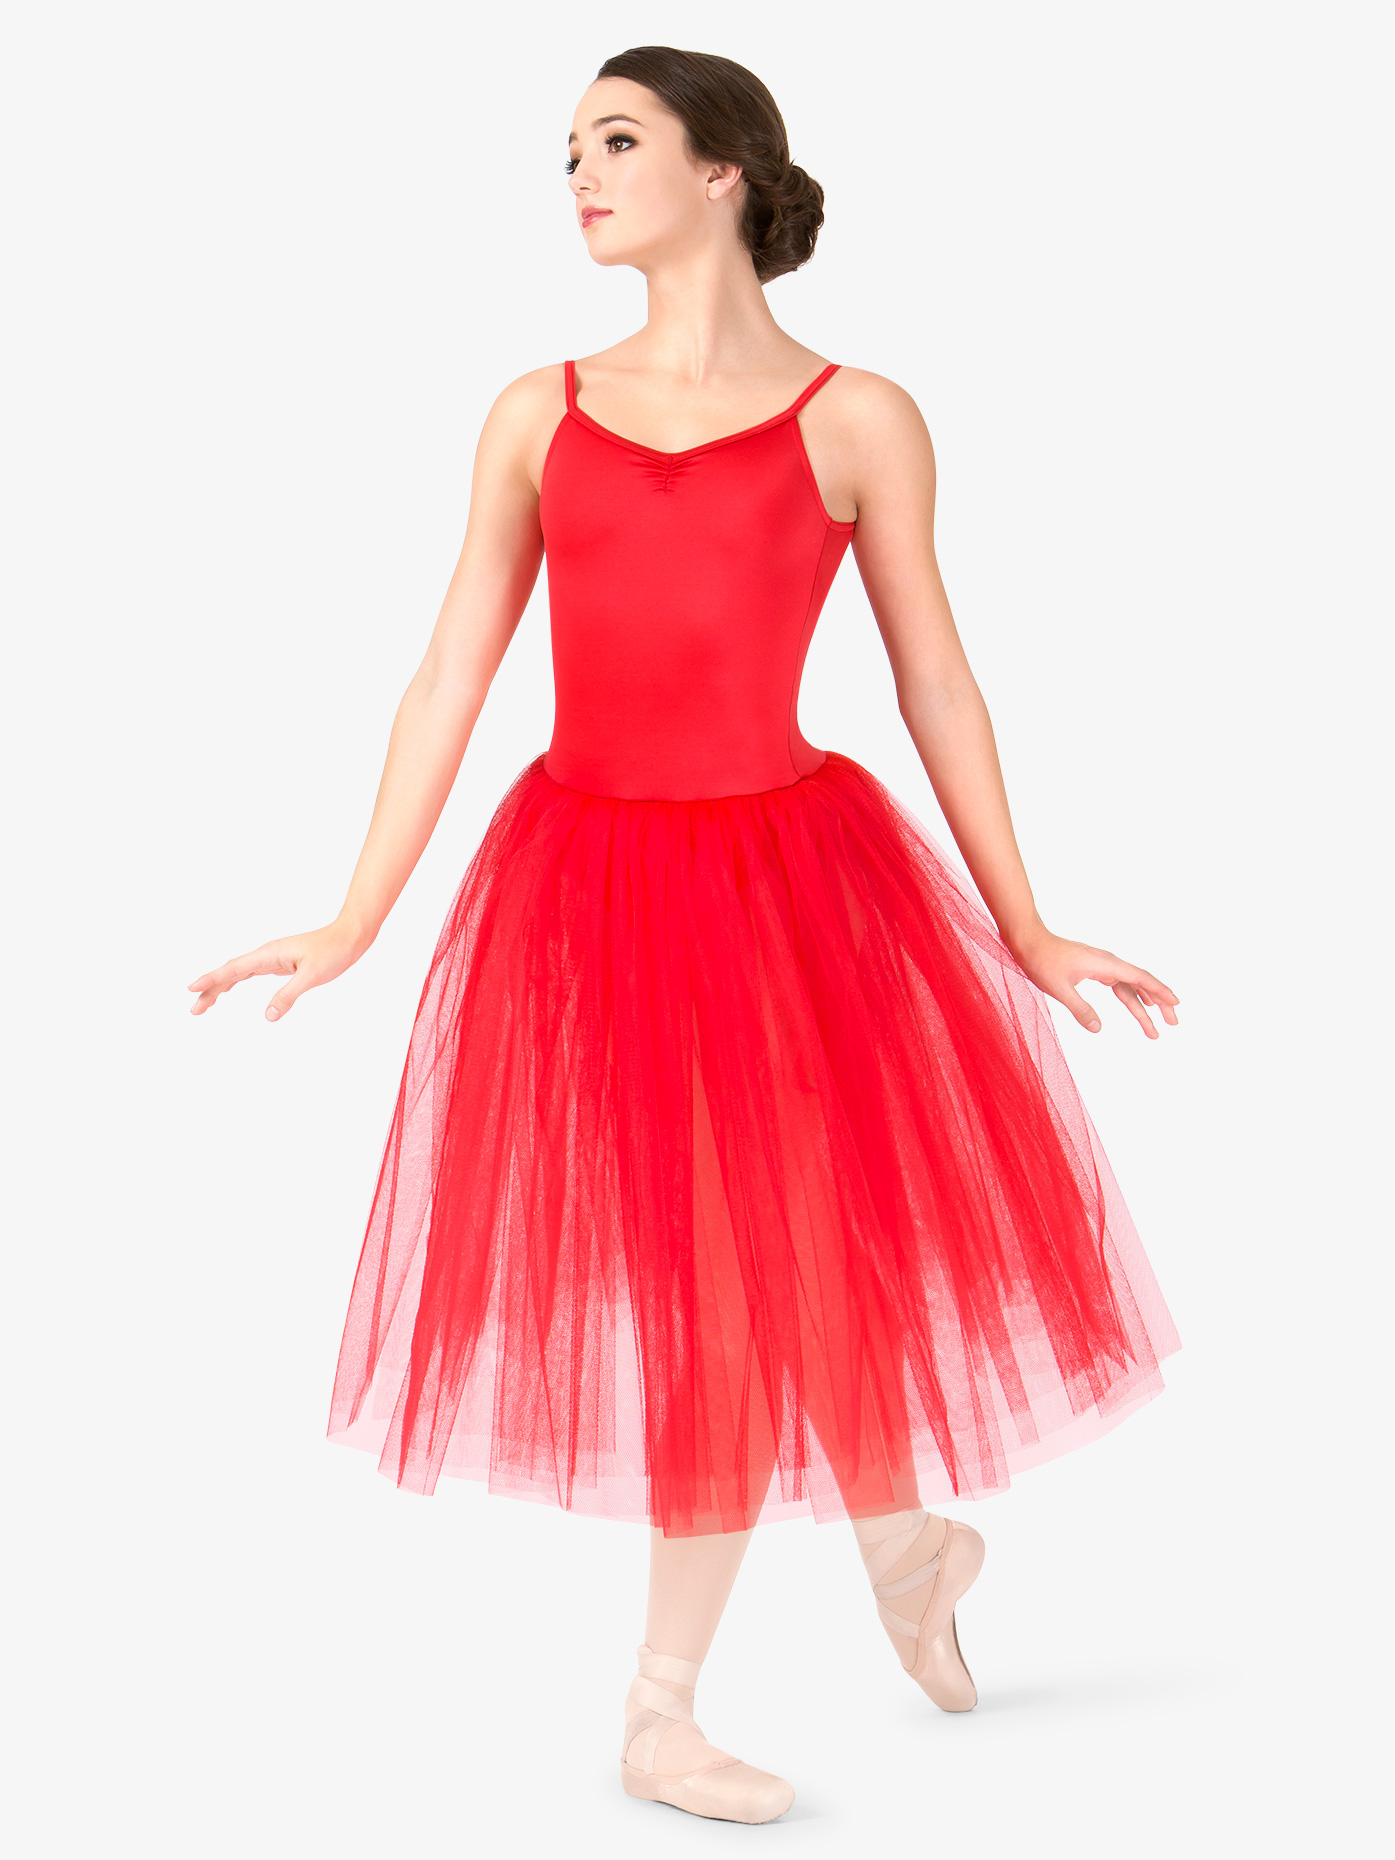 Natalie Womens Romantic Length 3-Layer Ballet Tutu Dress N9016